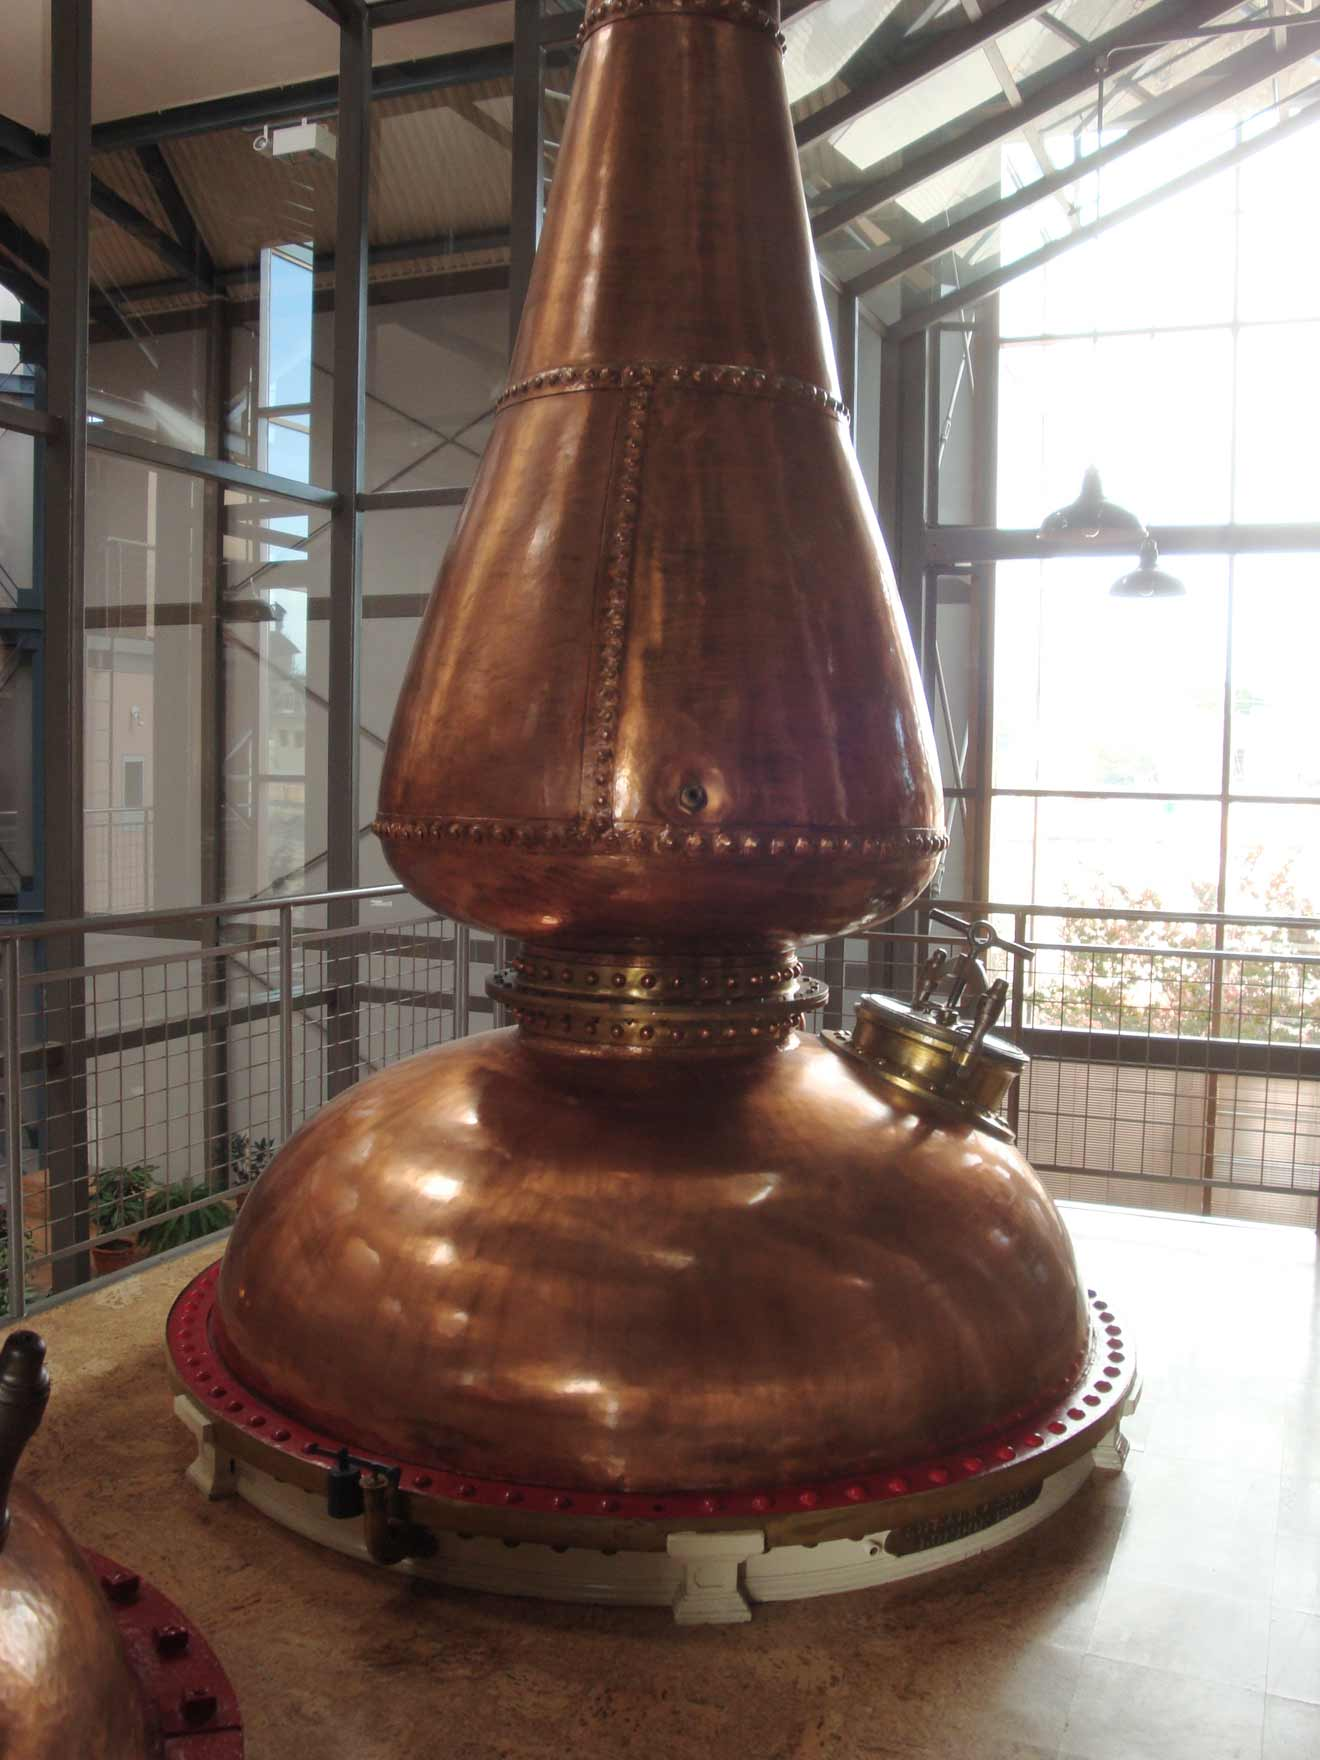 Canadian distillers use pot stills to concentrate flavors in the distillate